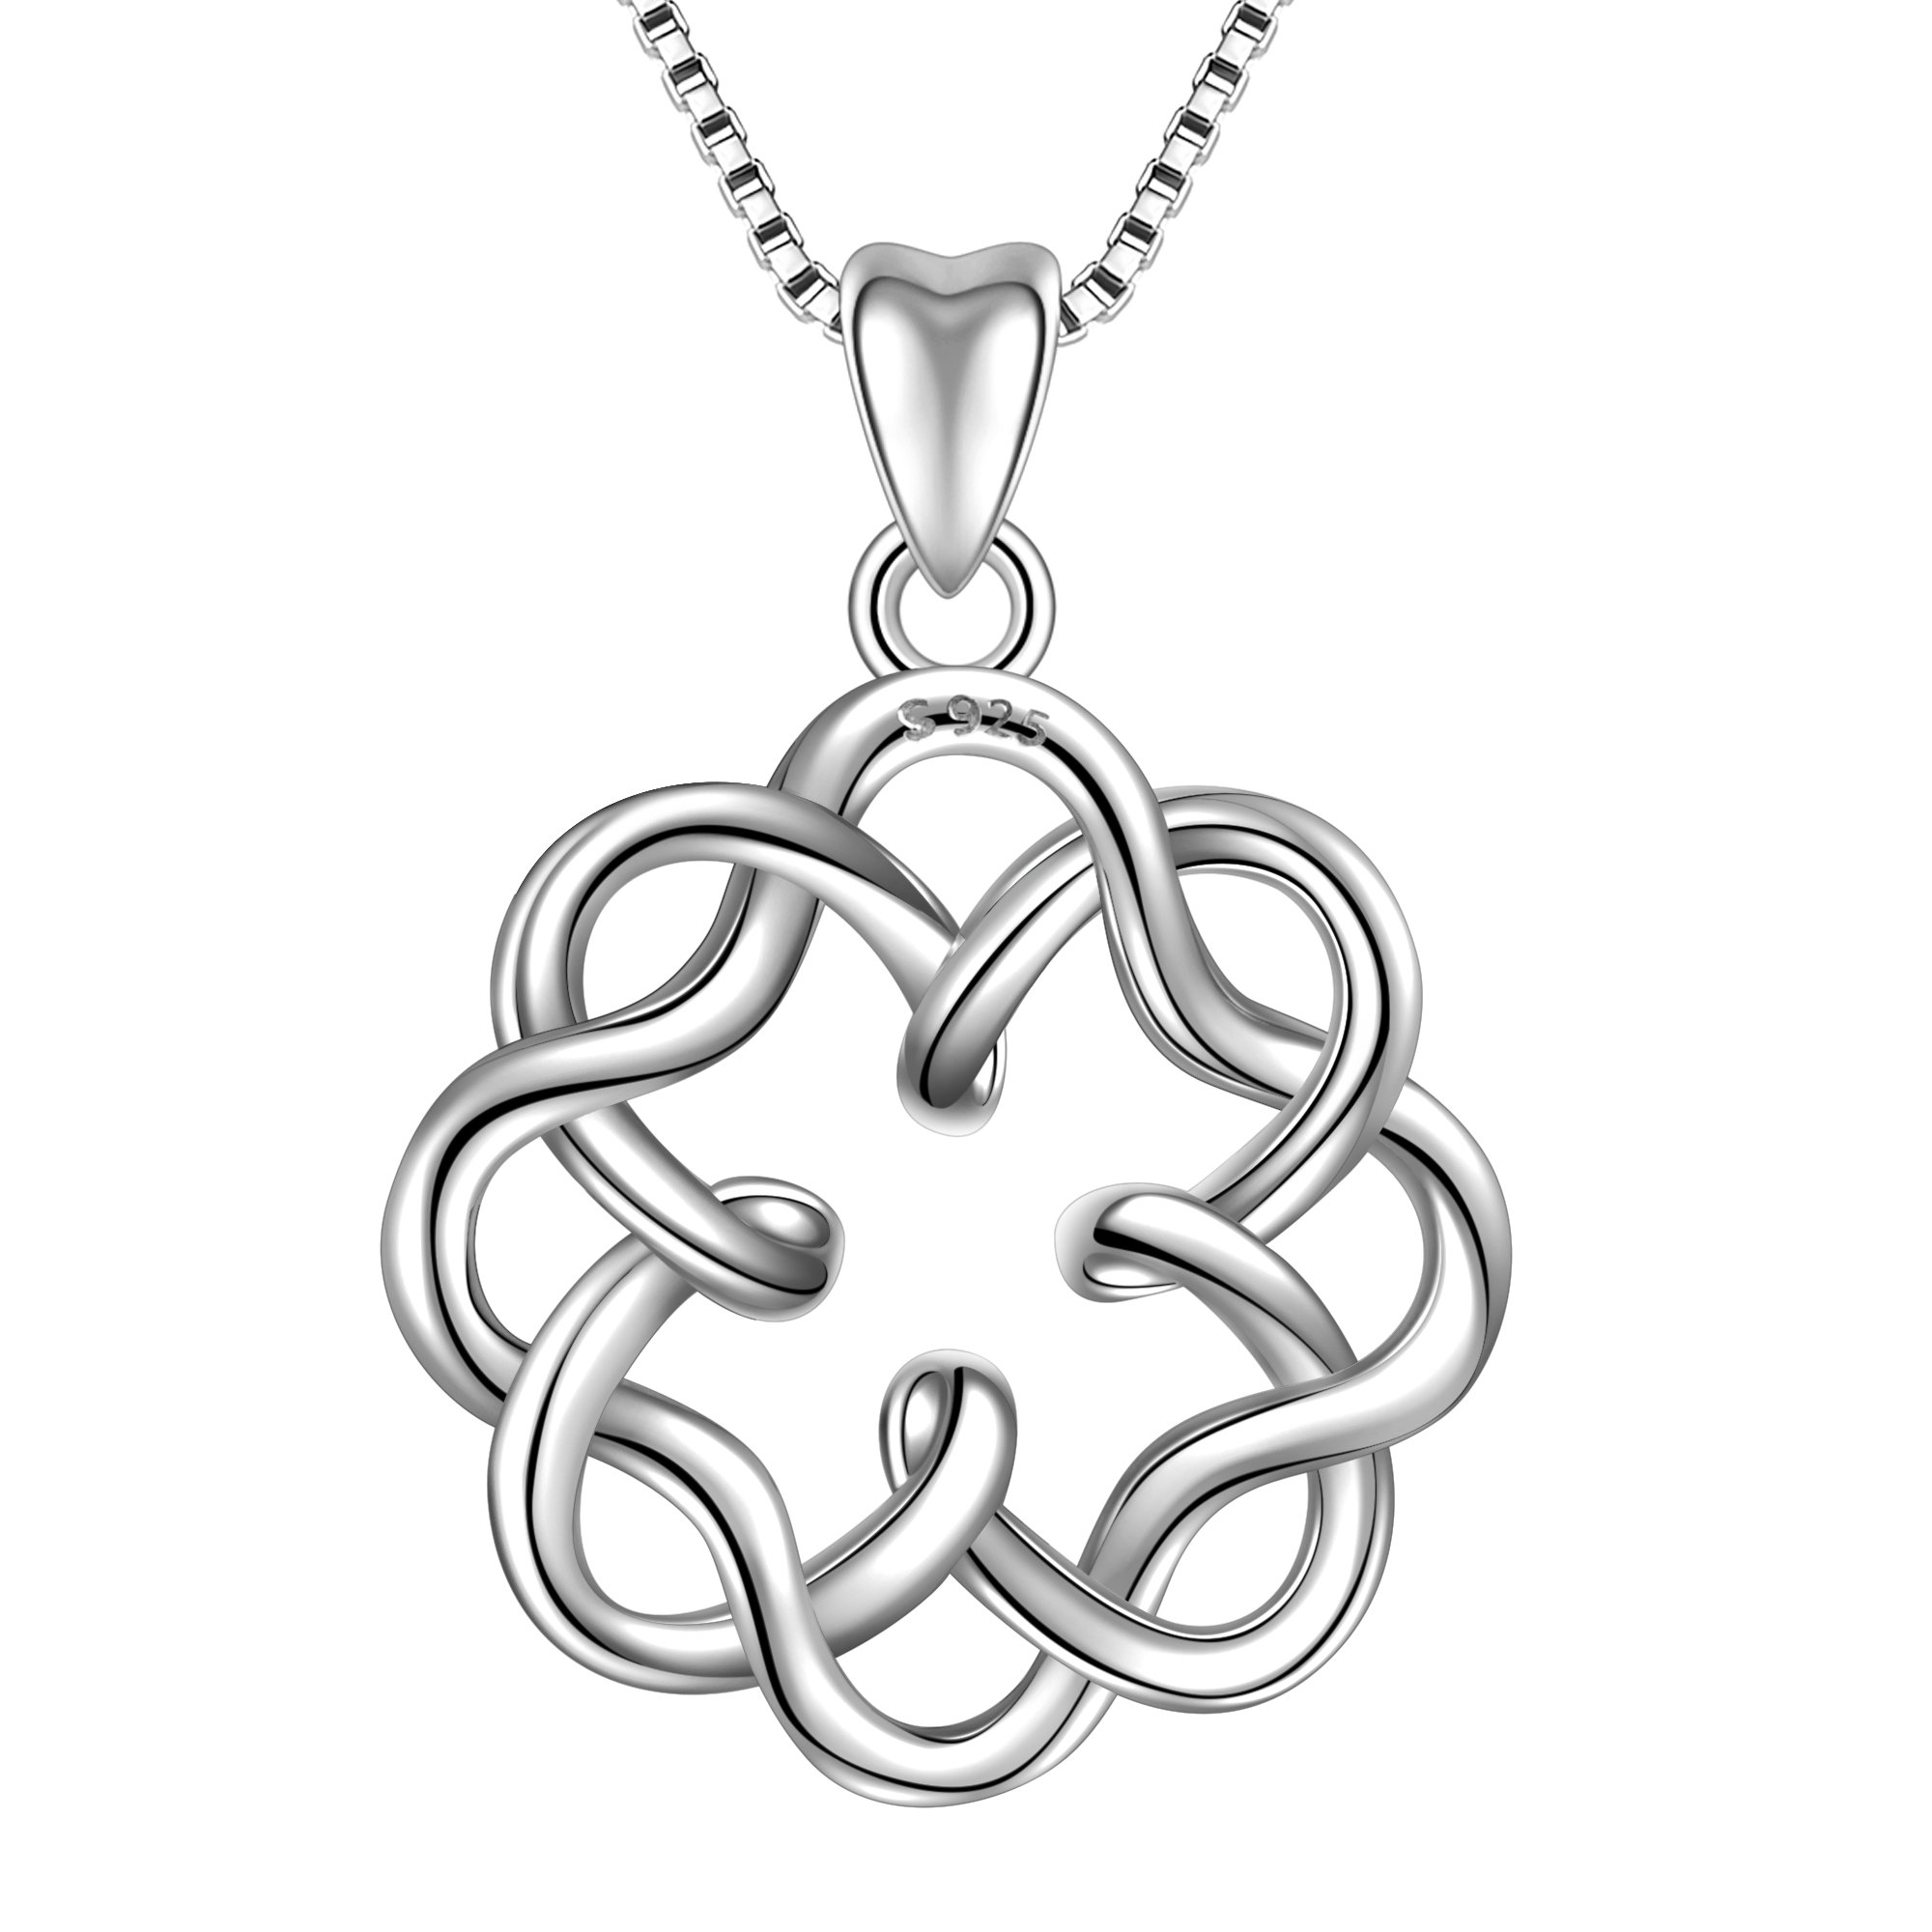 Angemiel 925 Sterling Silver Irish Infinity Endless Love Celtic Knot Vintage Pendant Necklace, Box Chain 18'' by Angemiel